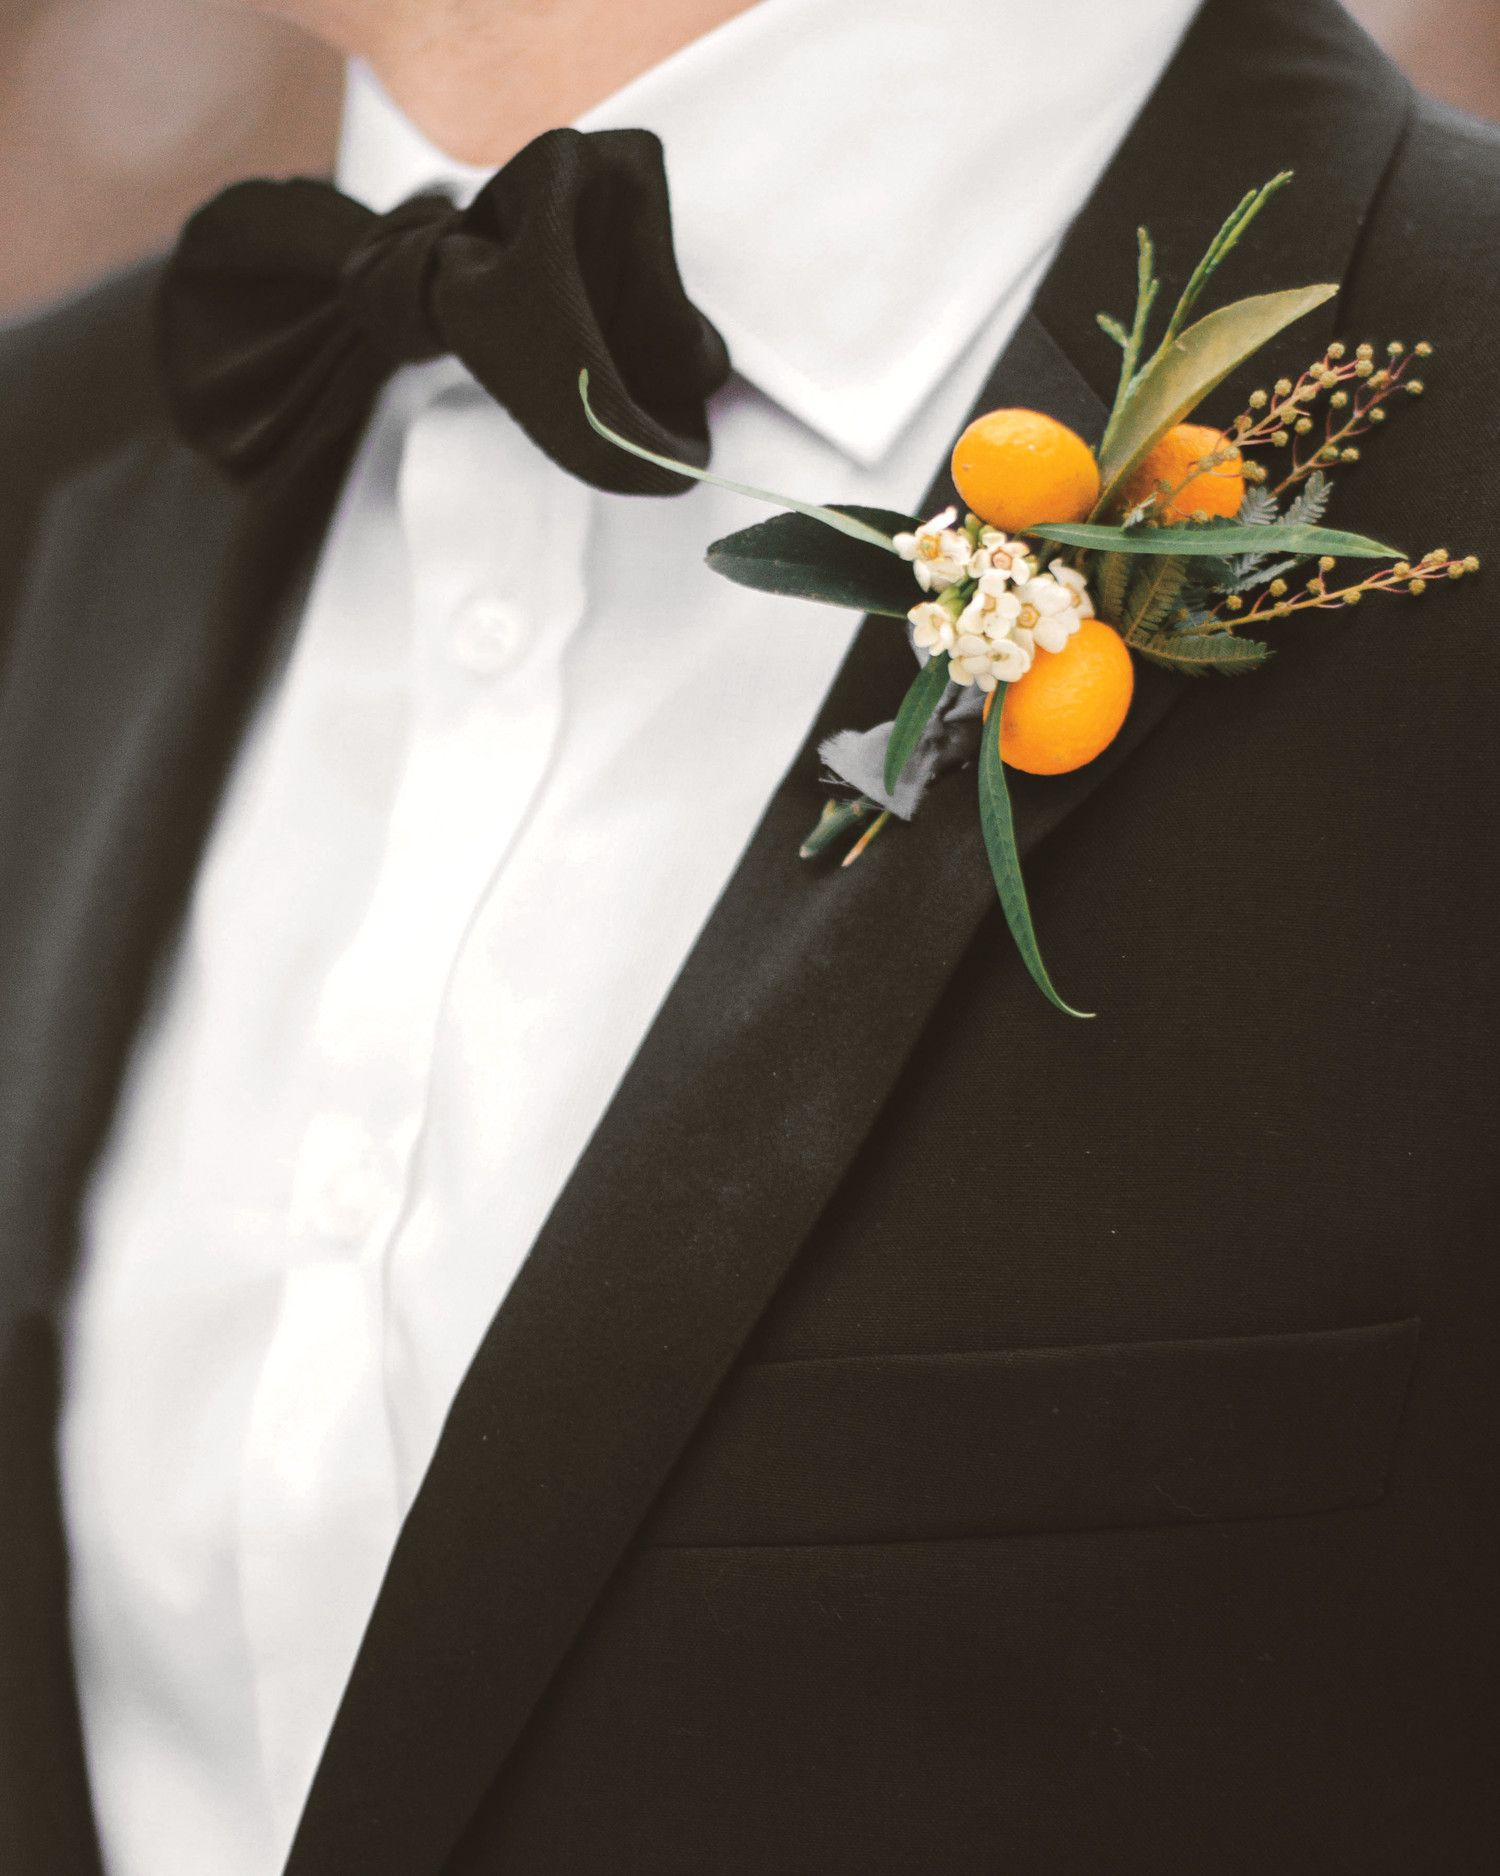 Menus lapels at this winter wedding were colorfully decorated with